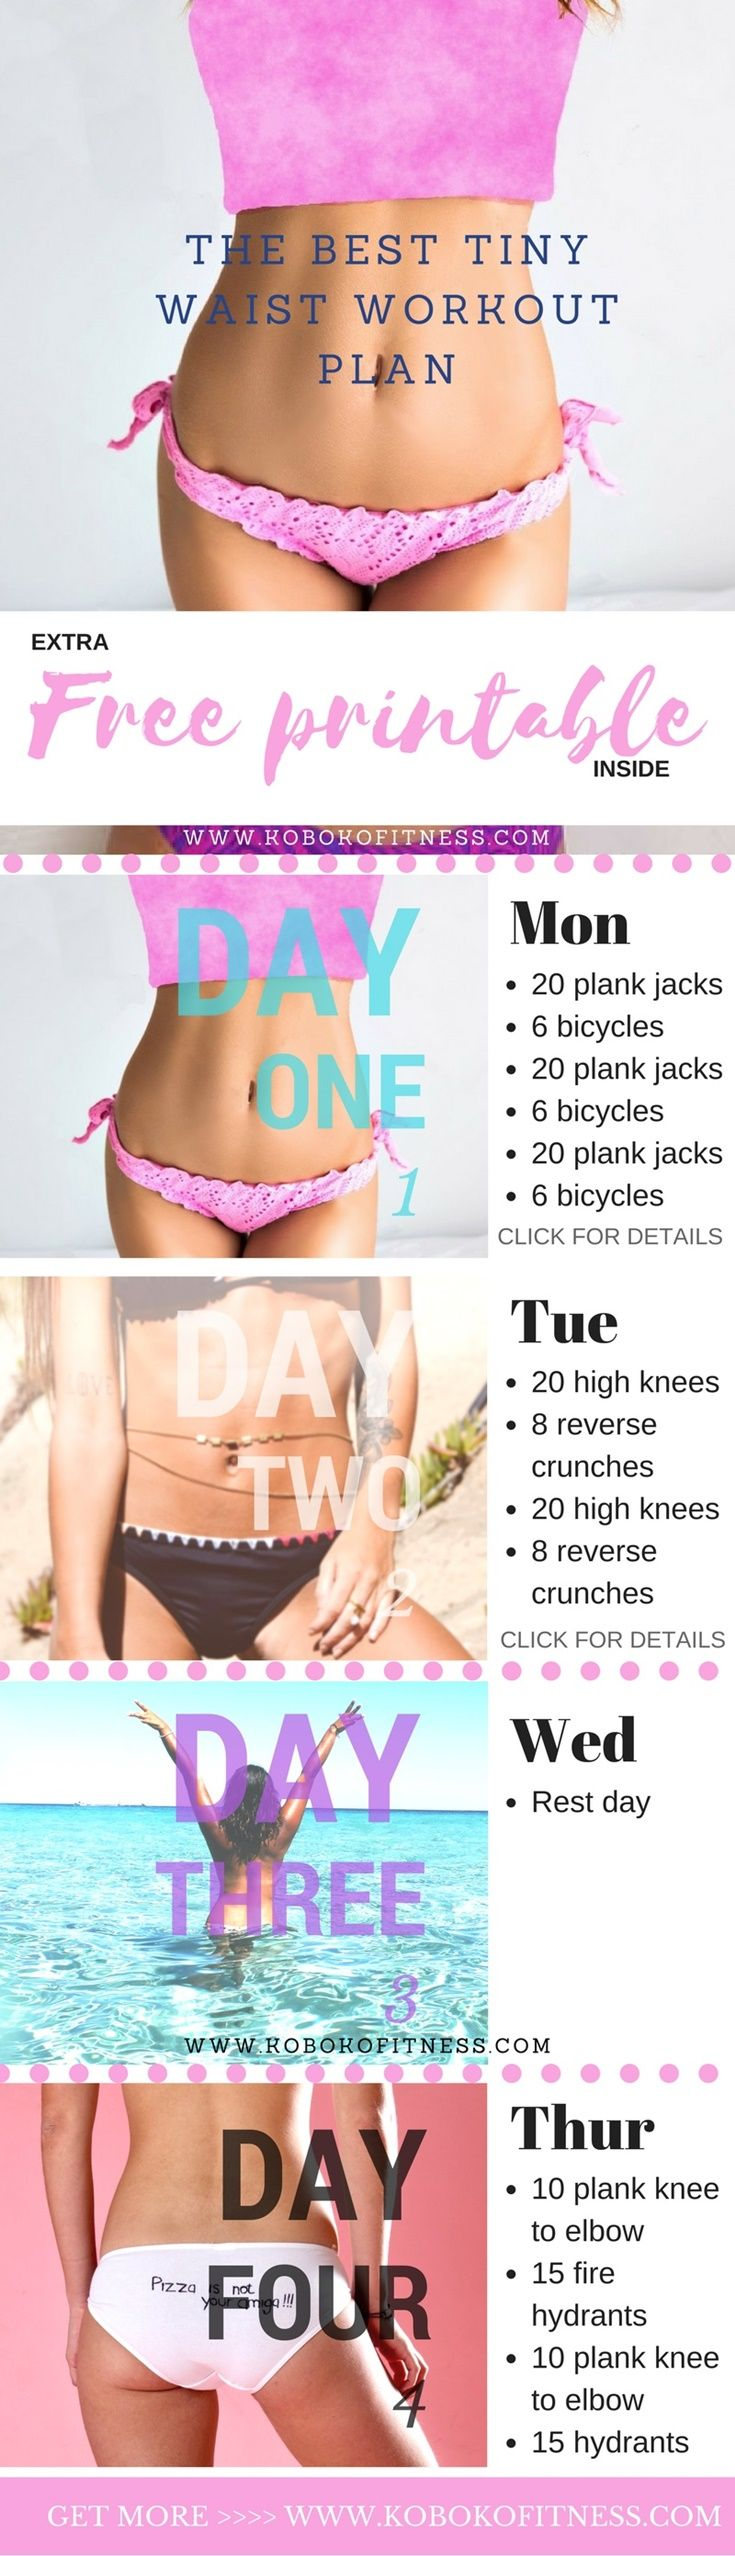 b4f8ac963d435bb50ecc9aaebbaa4037 - How To Get A Skinny Waist In 3 Days